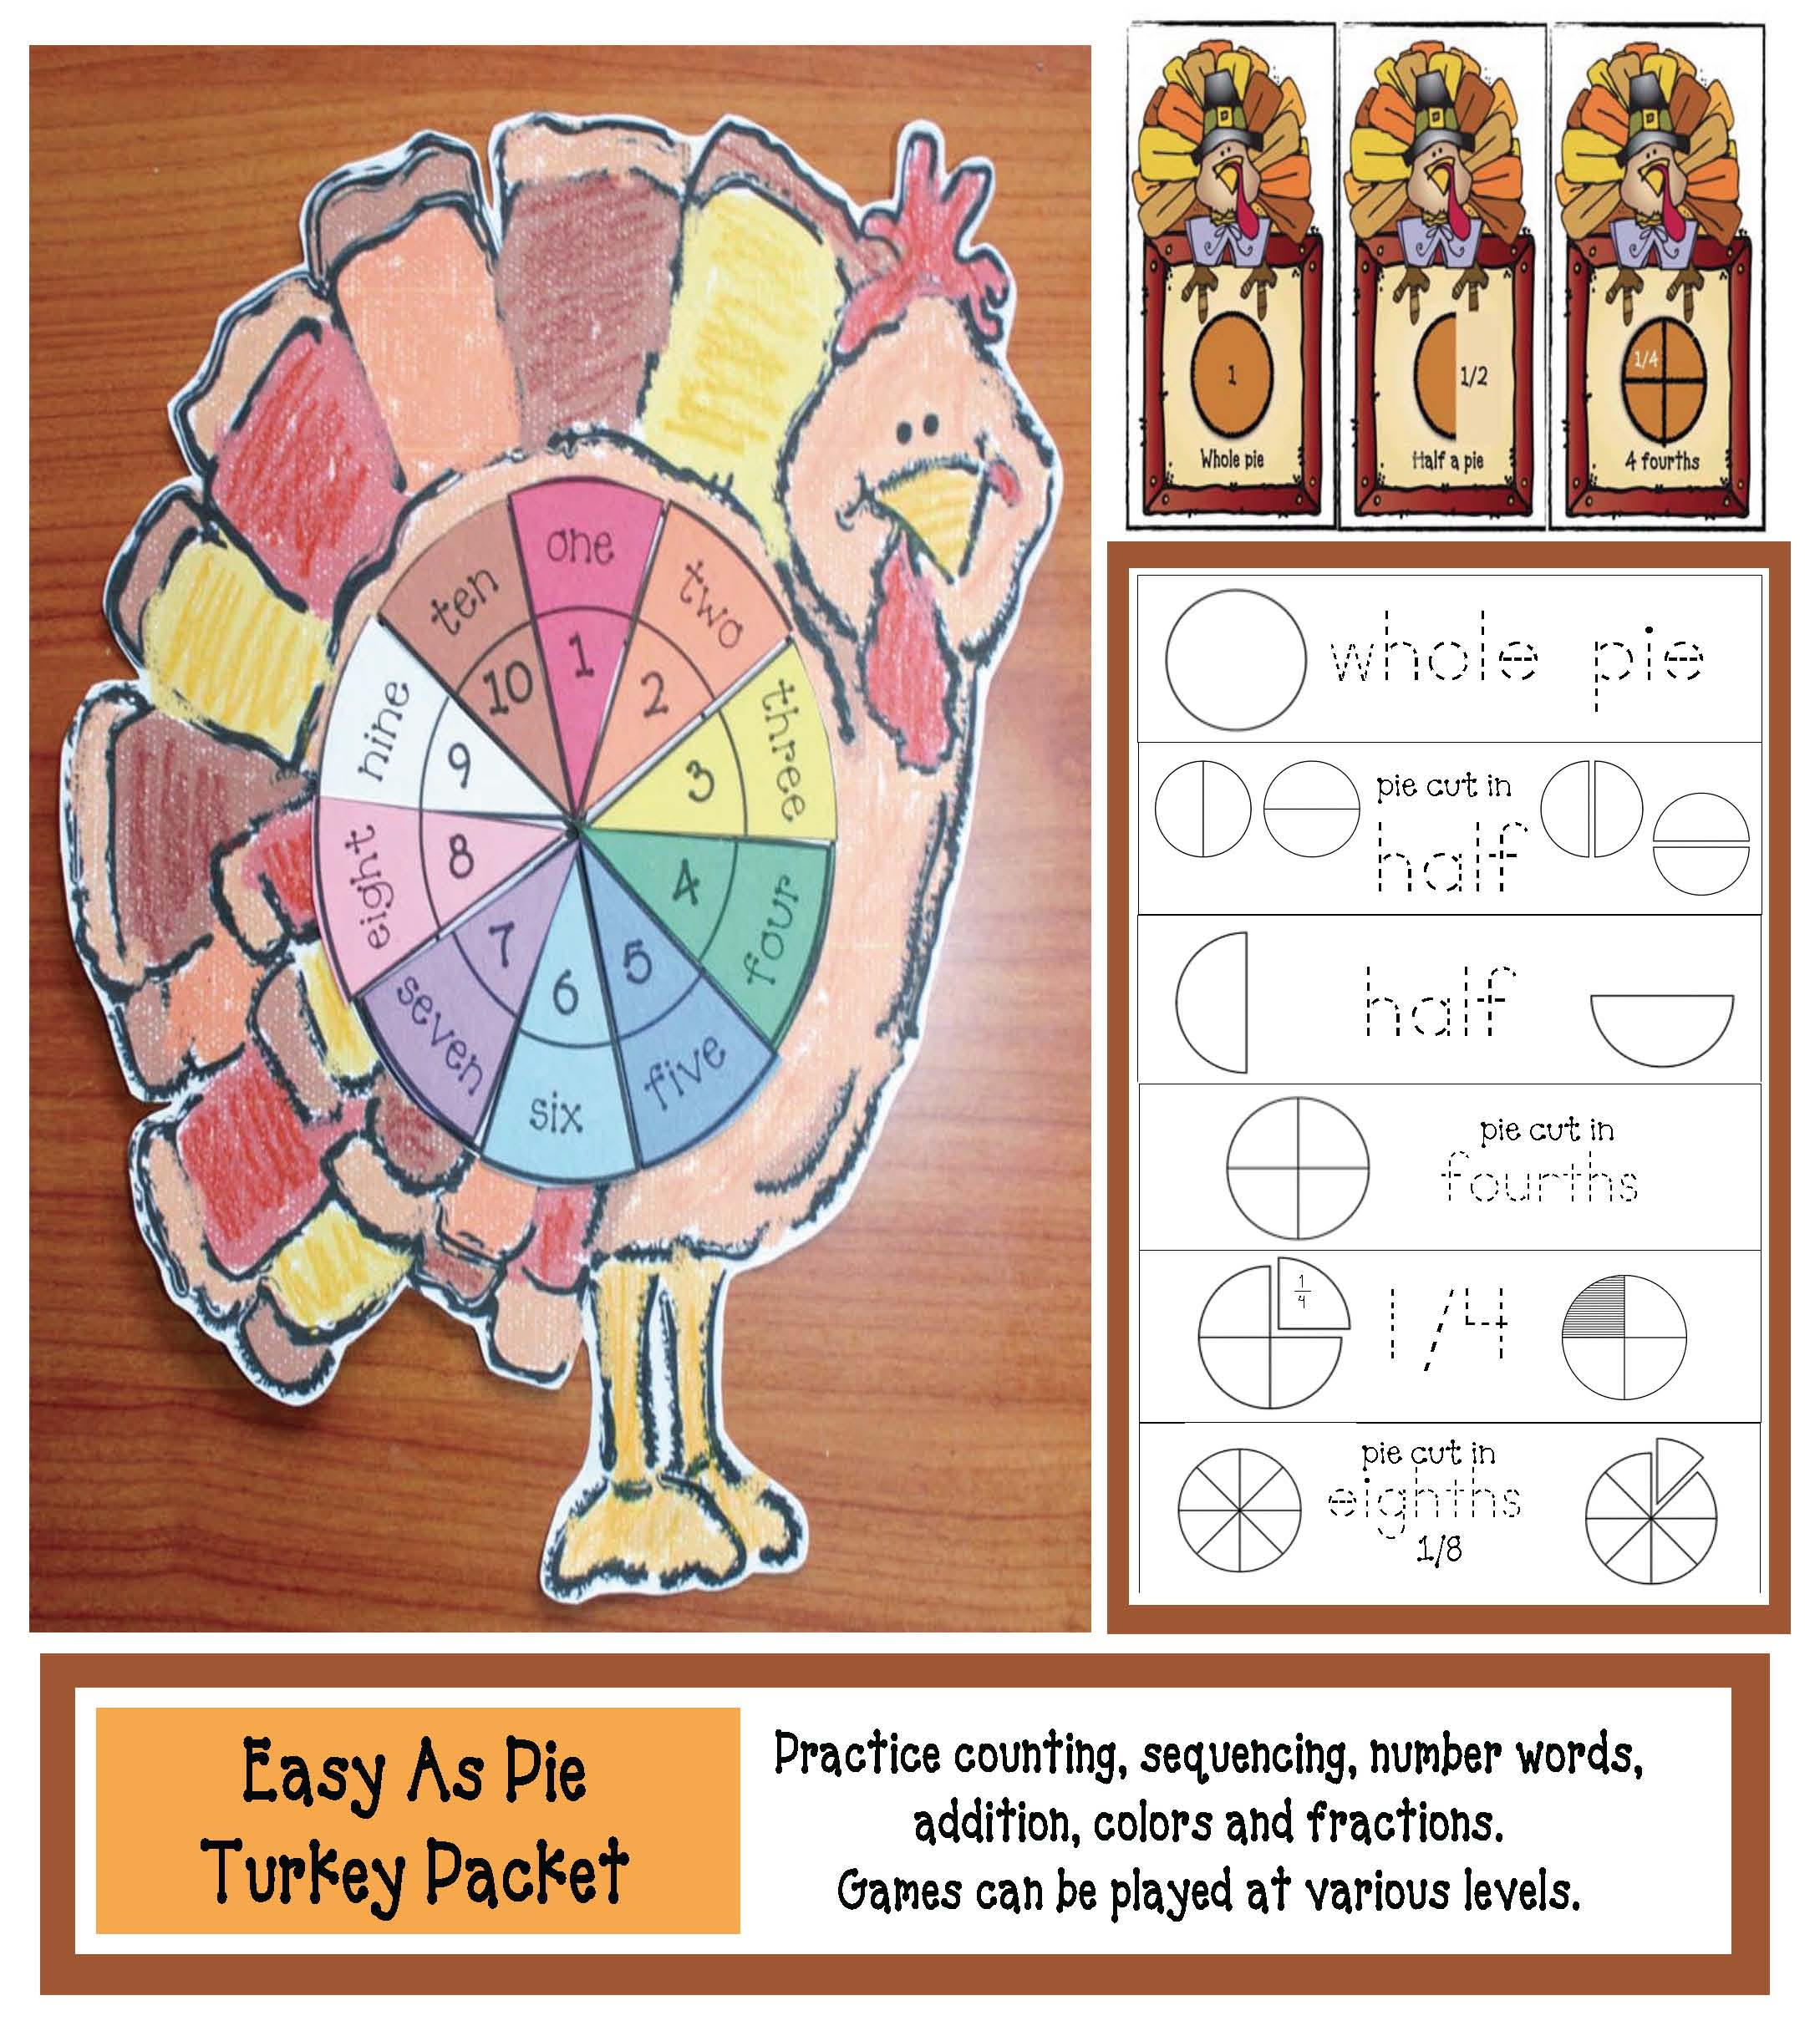 fraction activities, fraction games, colors, sequencing numbers 1-10, 10 piece fraction pie, number words, number word games, number word activities, math games, number puzzles, turkey activities, thanksging activities, thanksgiving games, turkey games, fraction flashcards,